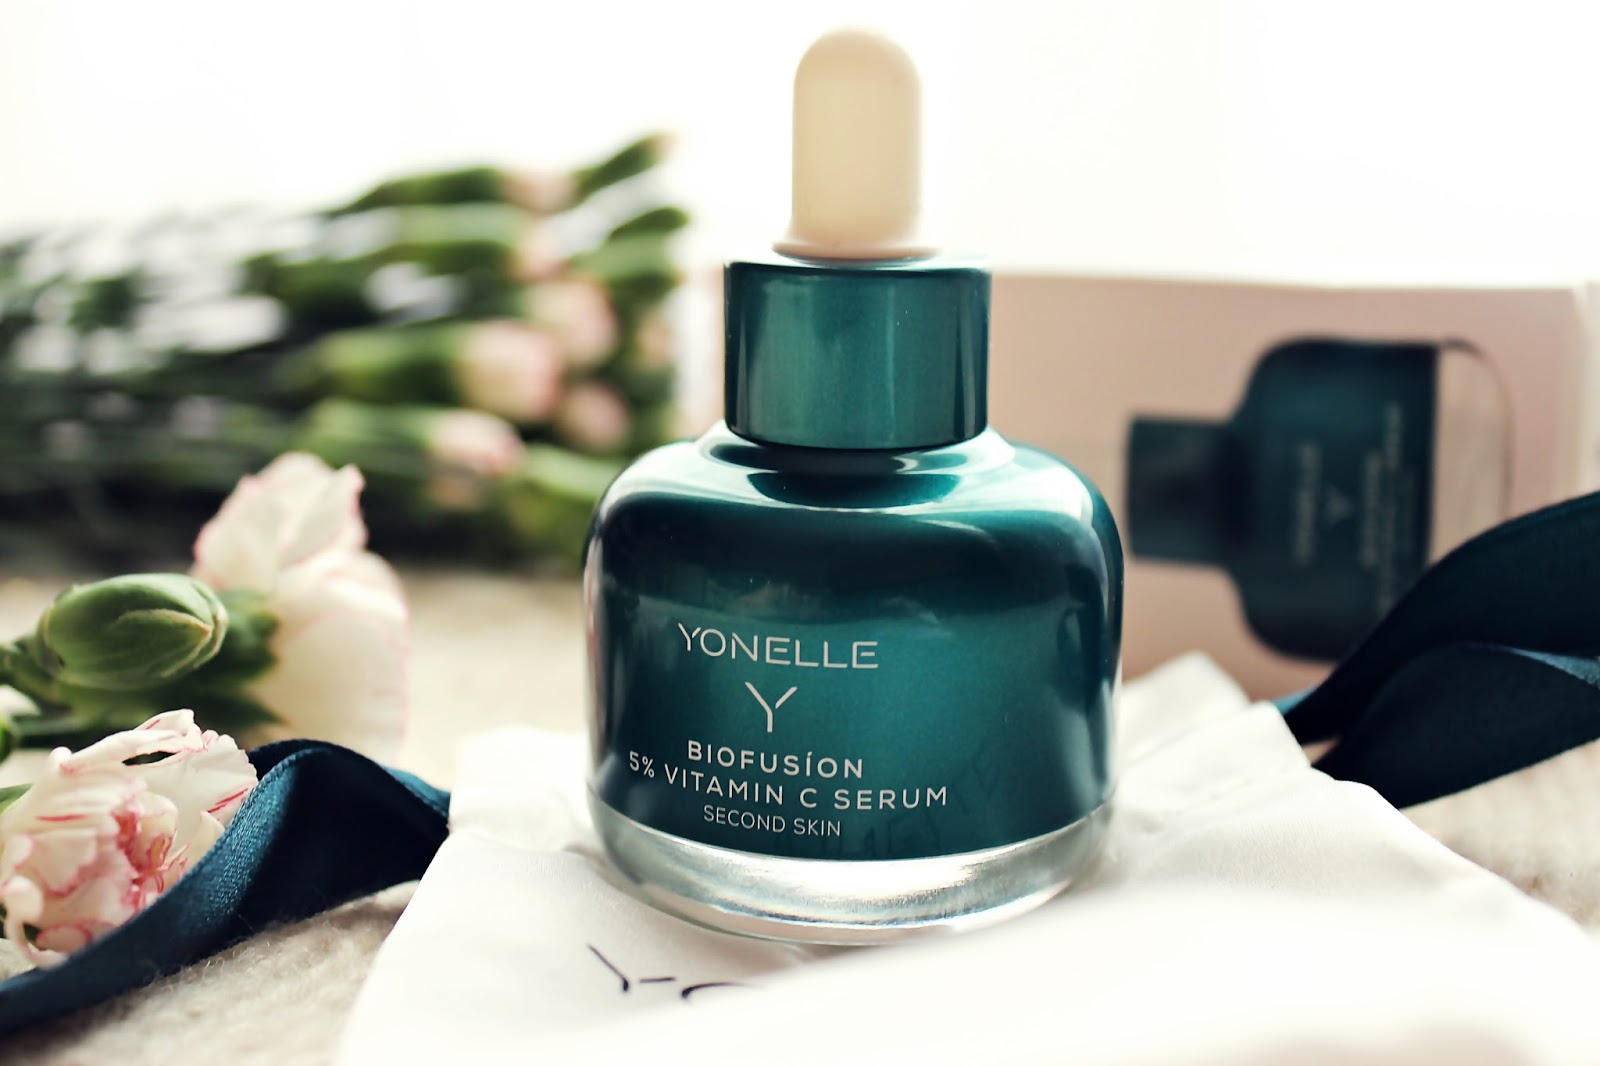 Yonelle Biofusion, Serum z witaminą C 5%